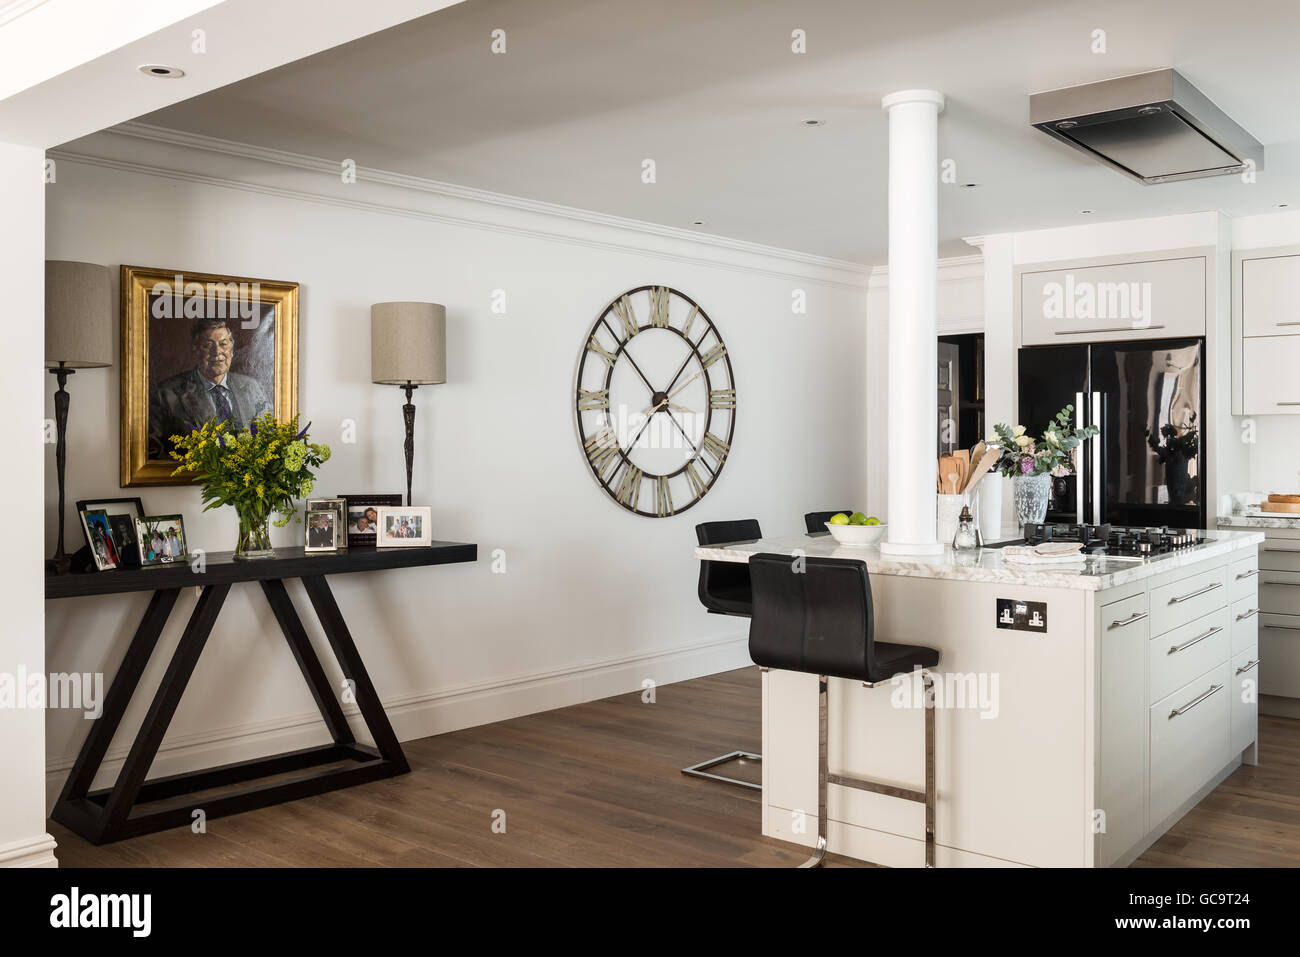 Family photos on a console table by John Chichester in open plan kitchen with large wall clock - Stock Image